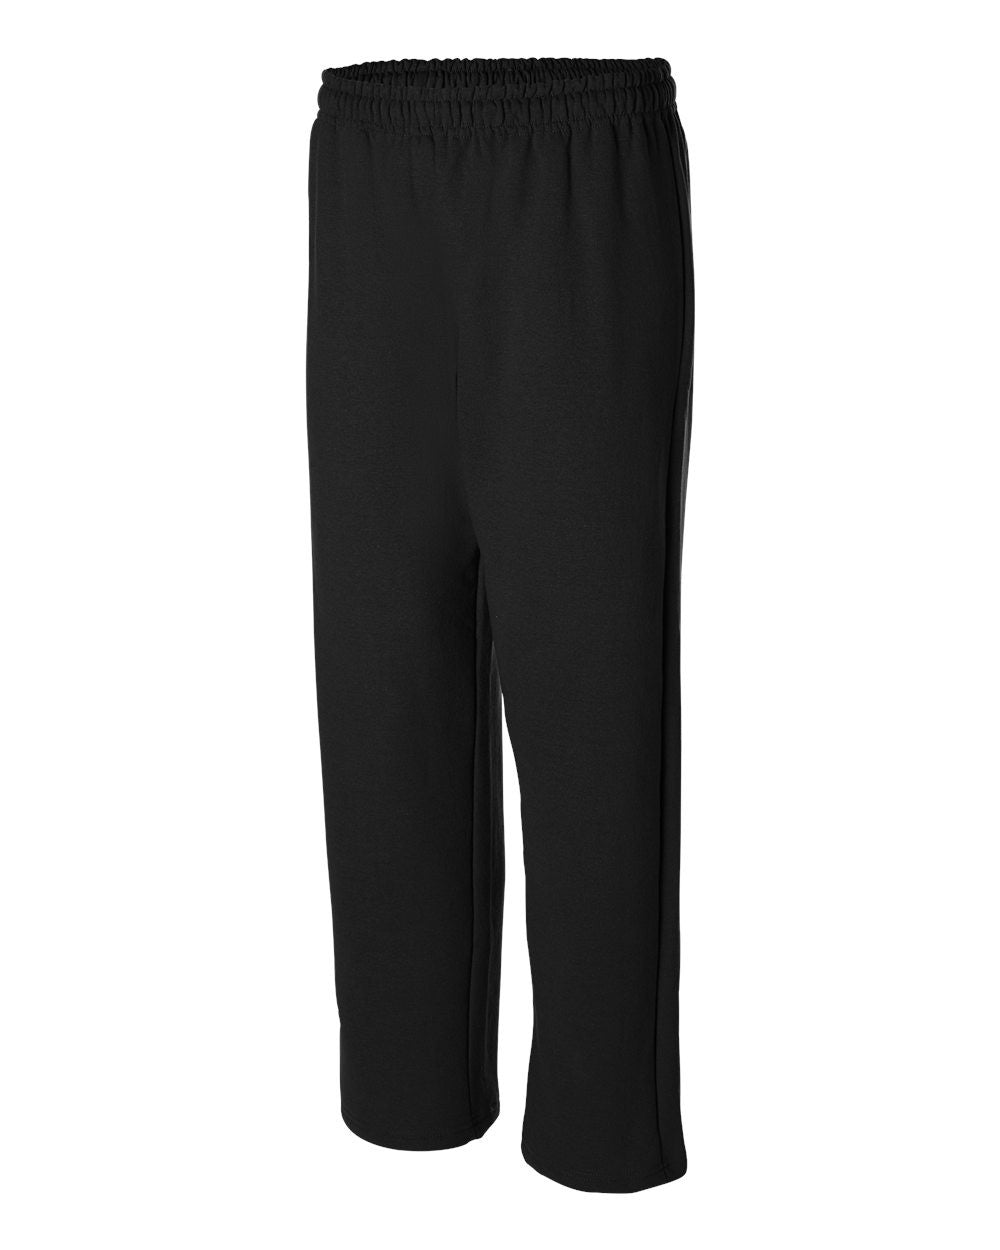 Heavy Sweatpants with open bottom by Gildan - Discountedrack.com